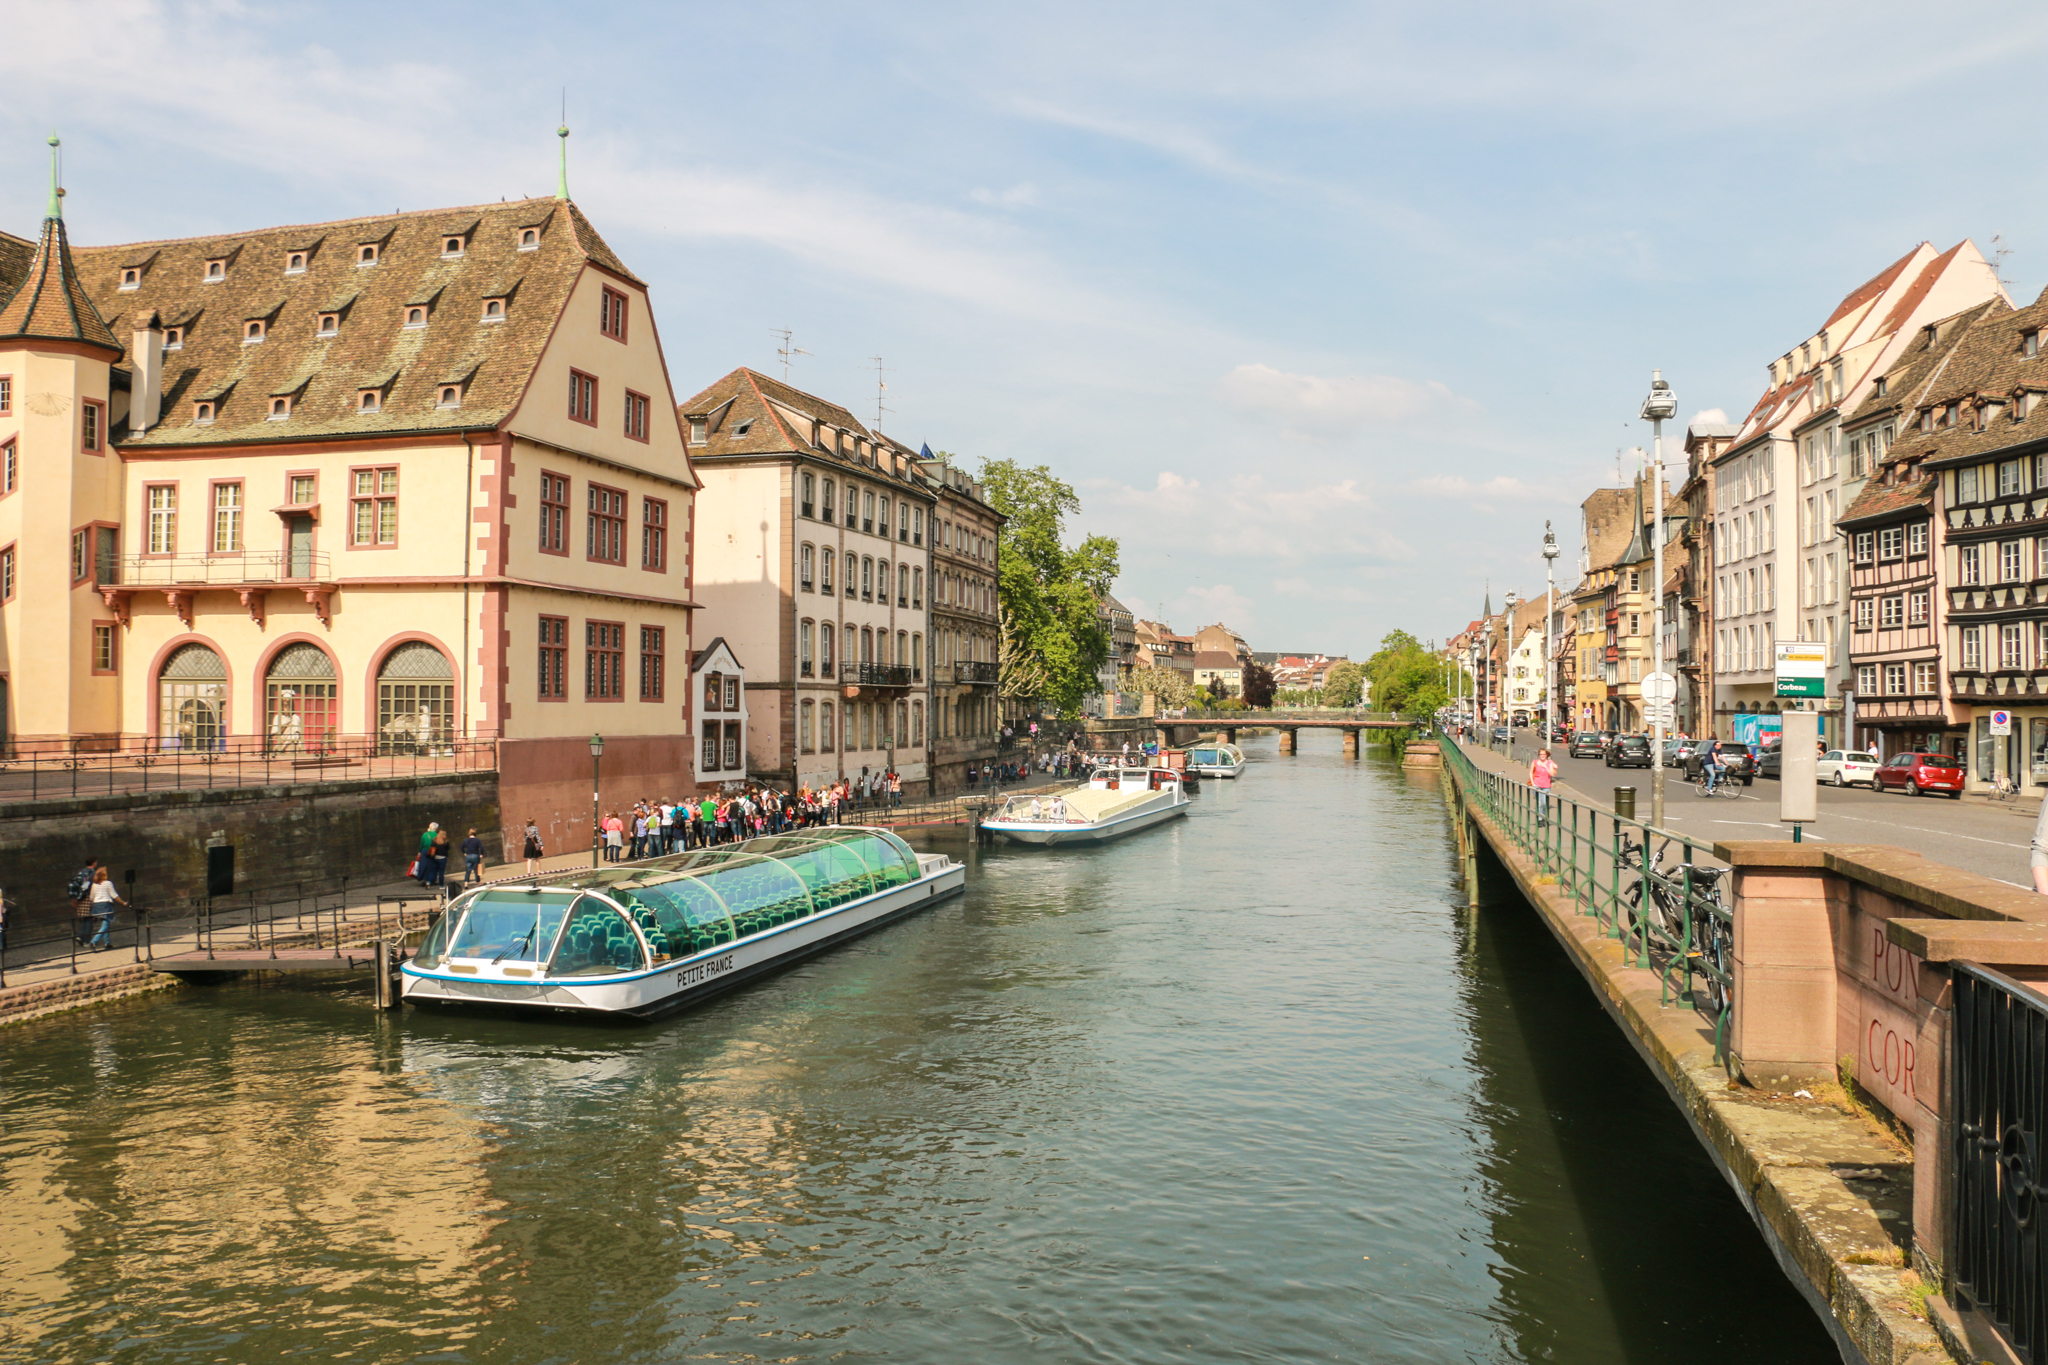 Strasbourg canal